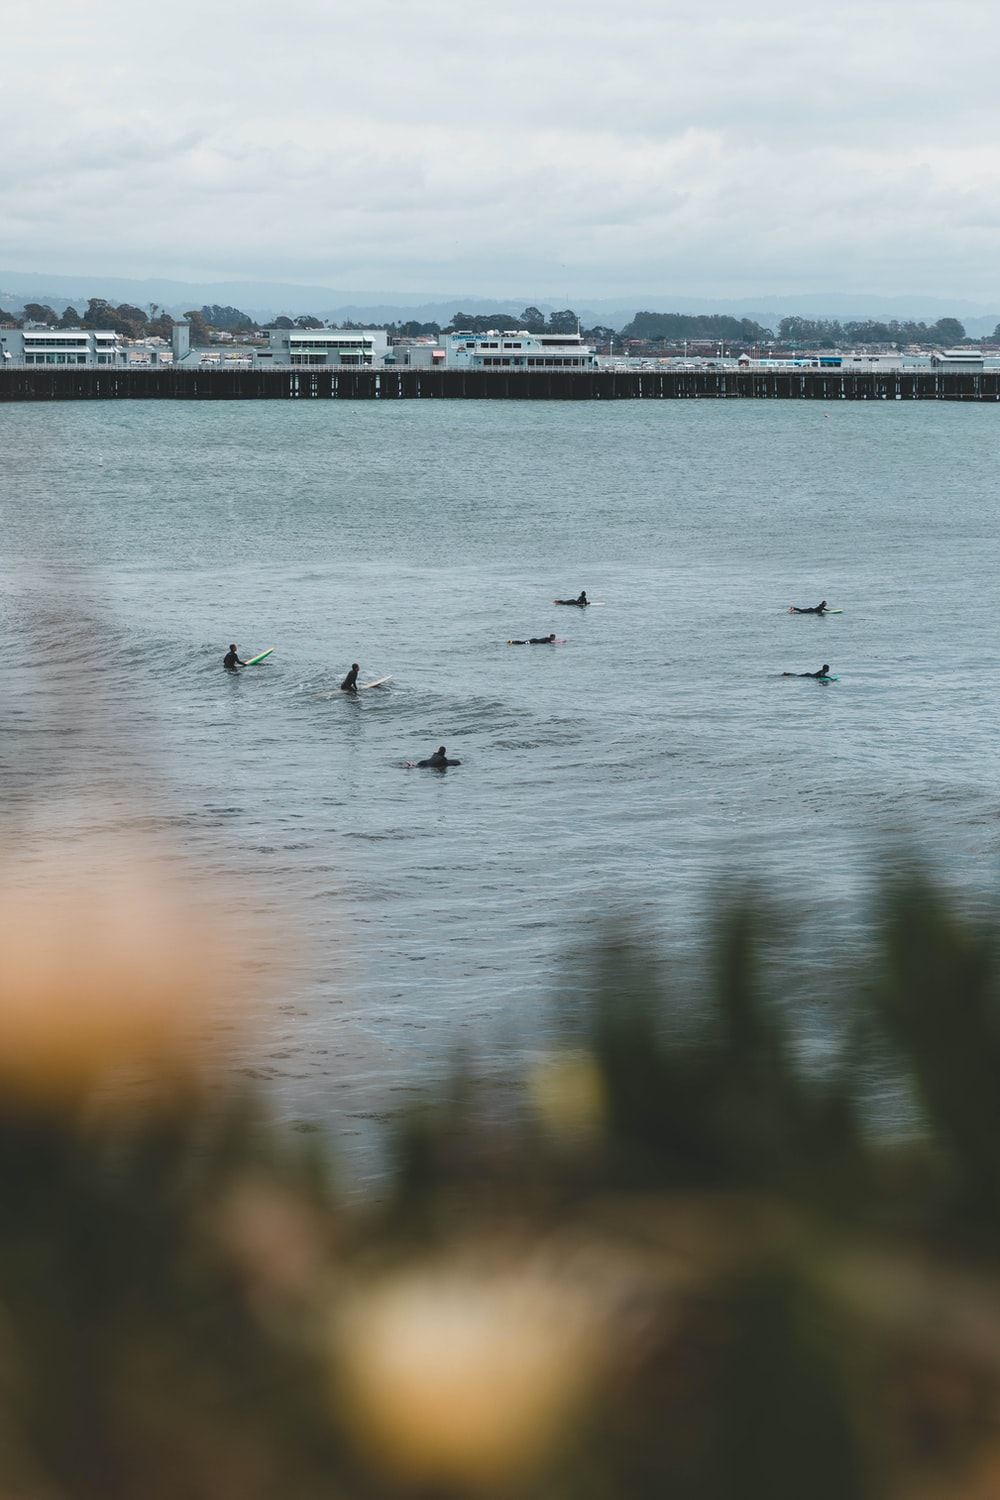 people surfing during daytime